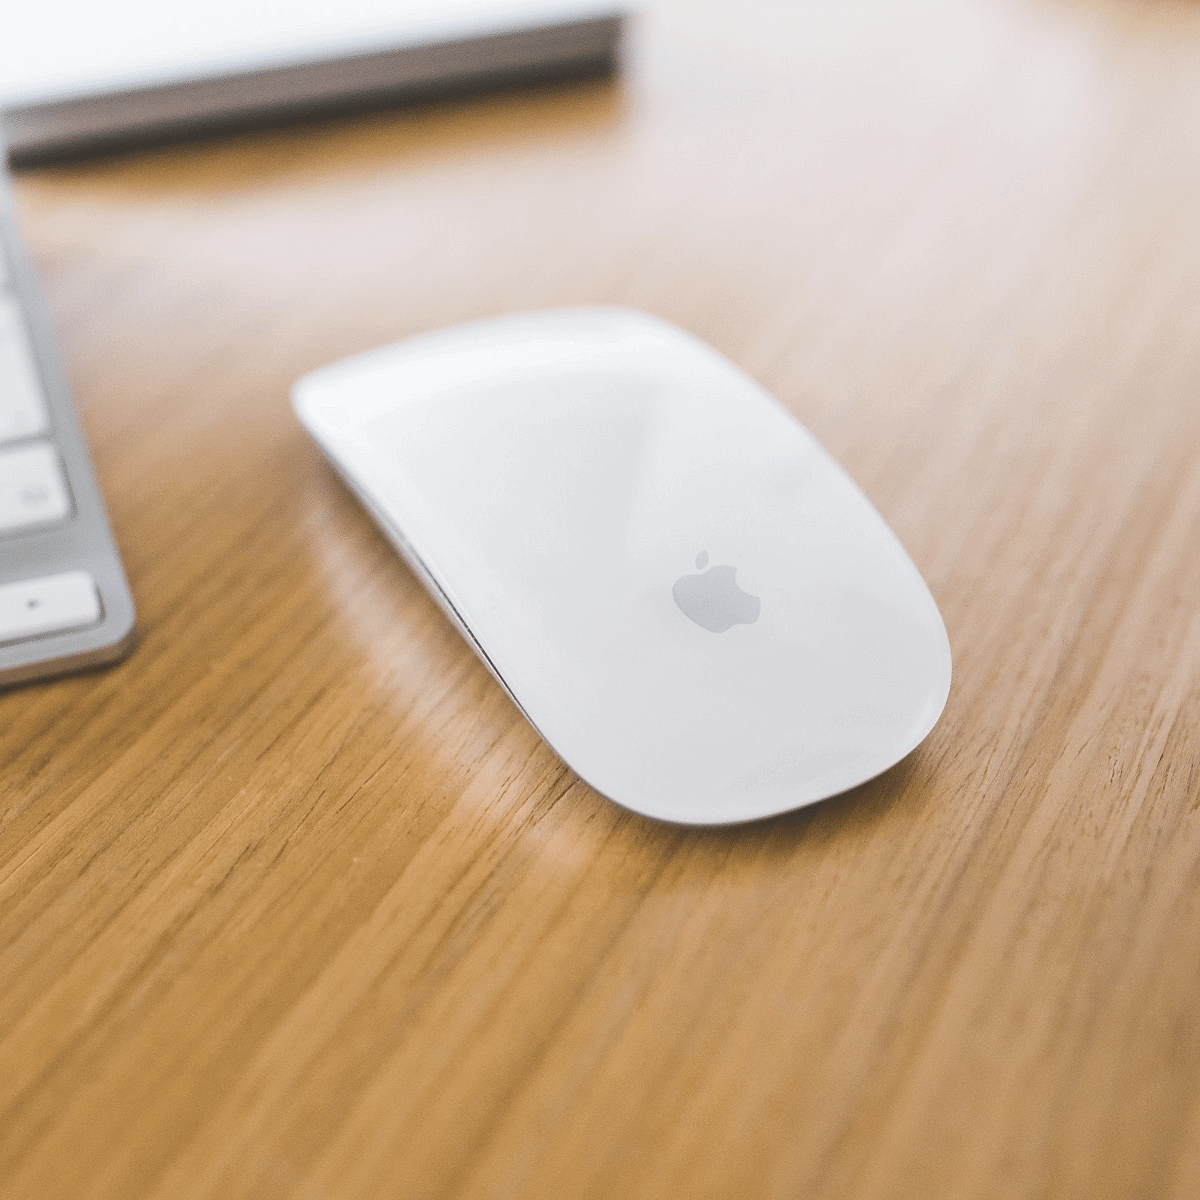 apple magic mouse instructions